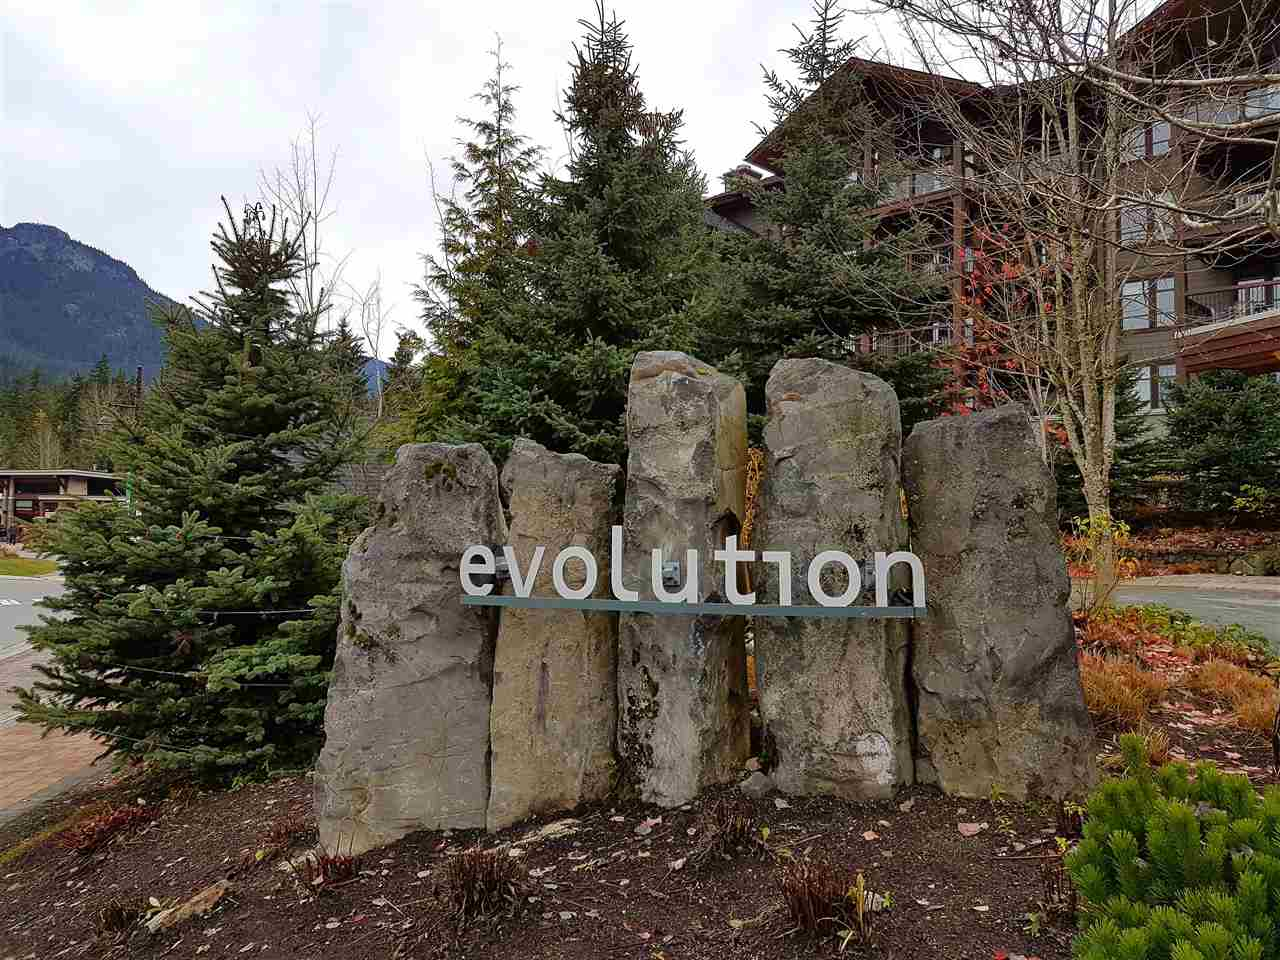 Main Photo: 302c 2020 LONDON Lane in Whistler: Whistler Creek Condo for sale : MLS® # R2122014